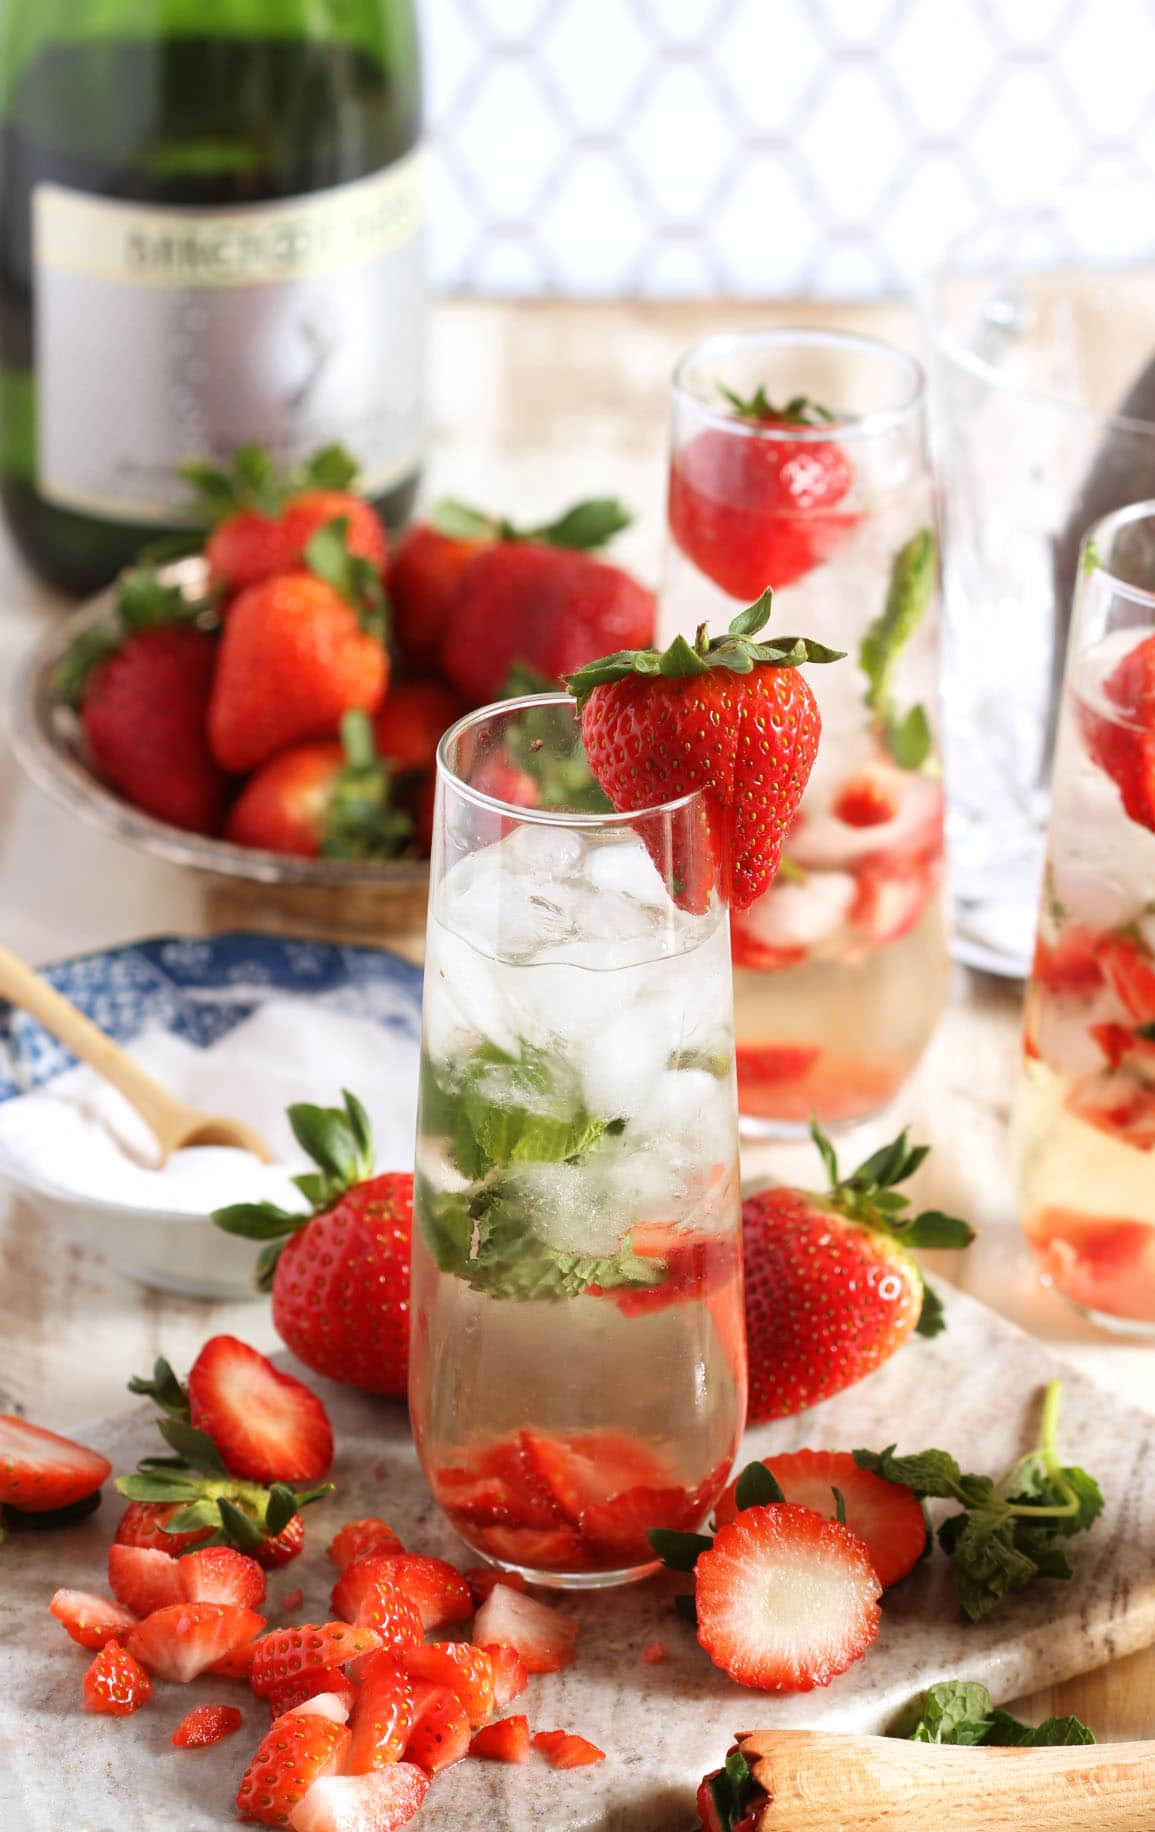 Strawberry Champagne Mojito | 21 Easy Brunch Cocktails For Your Weekend Party With Your Girlfriends